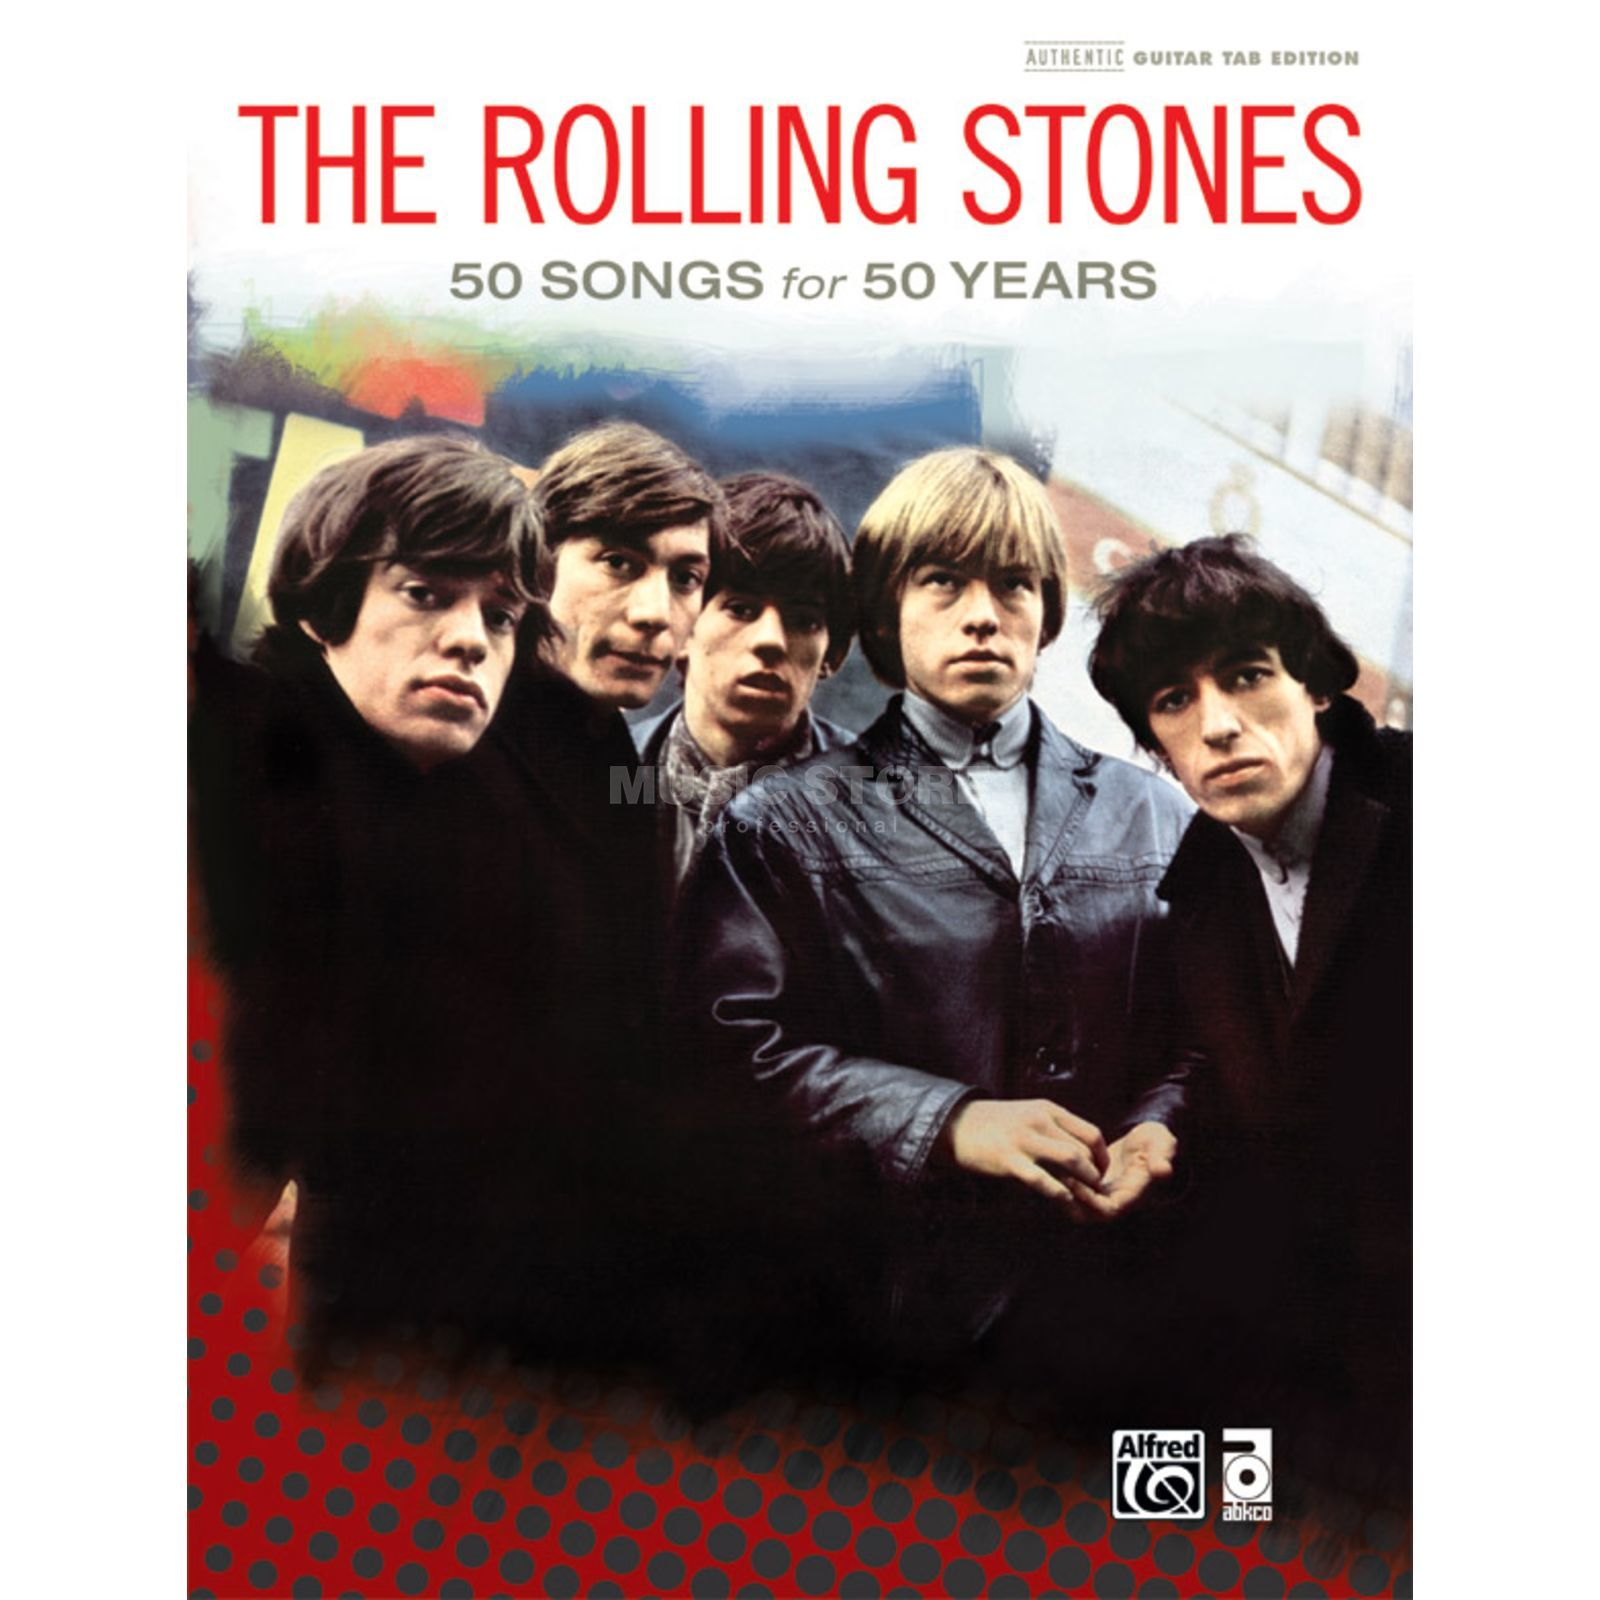 Alfred Music The Rolling Stones: 50 Songs for 50 Years Produktbild